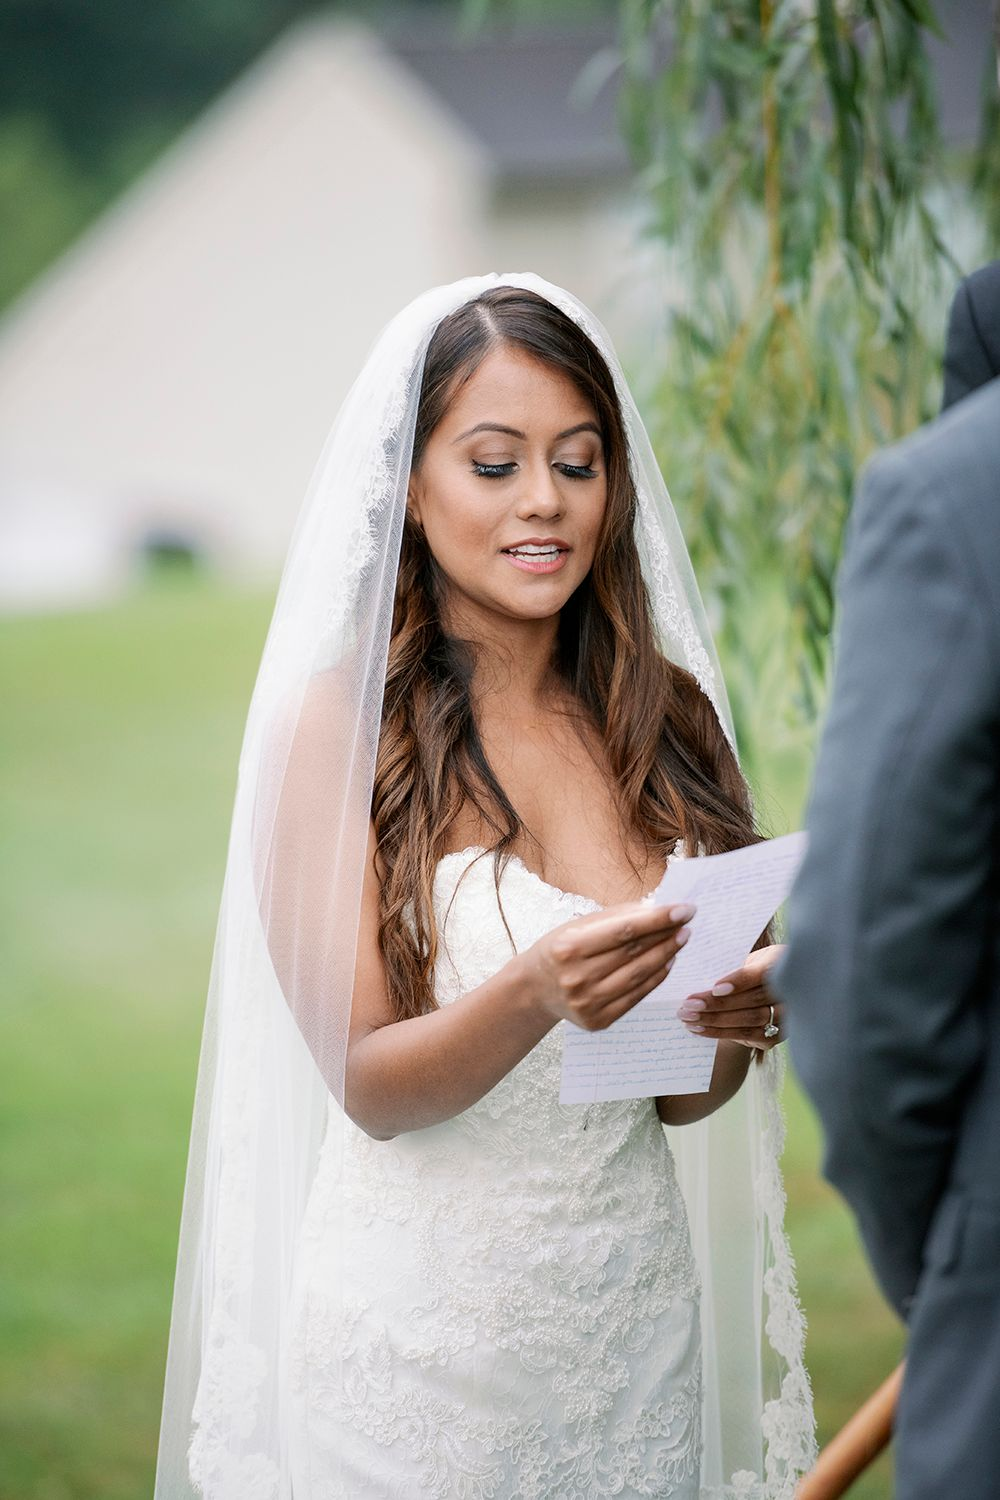 bride reading her vows during the wedding ceremony